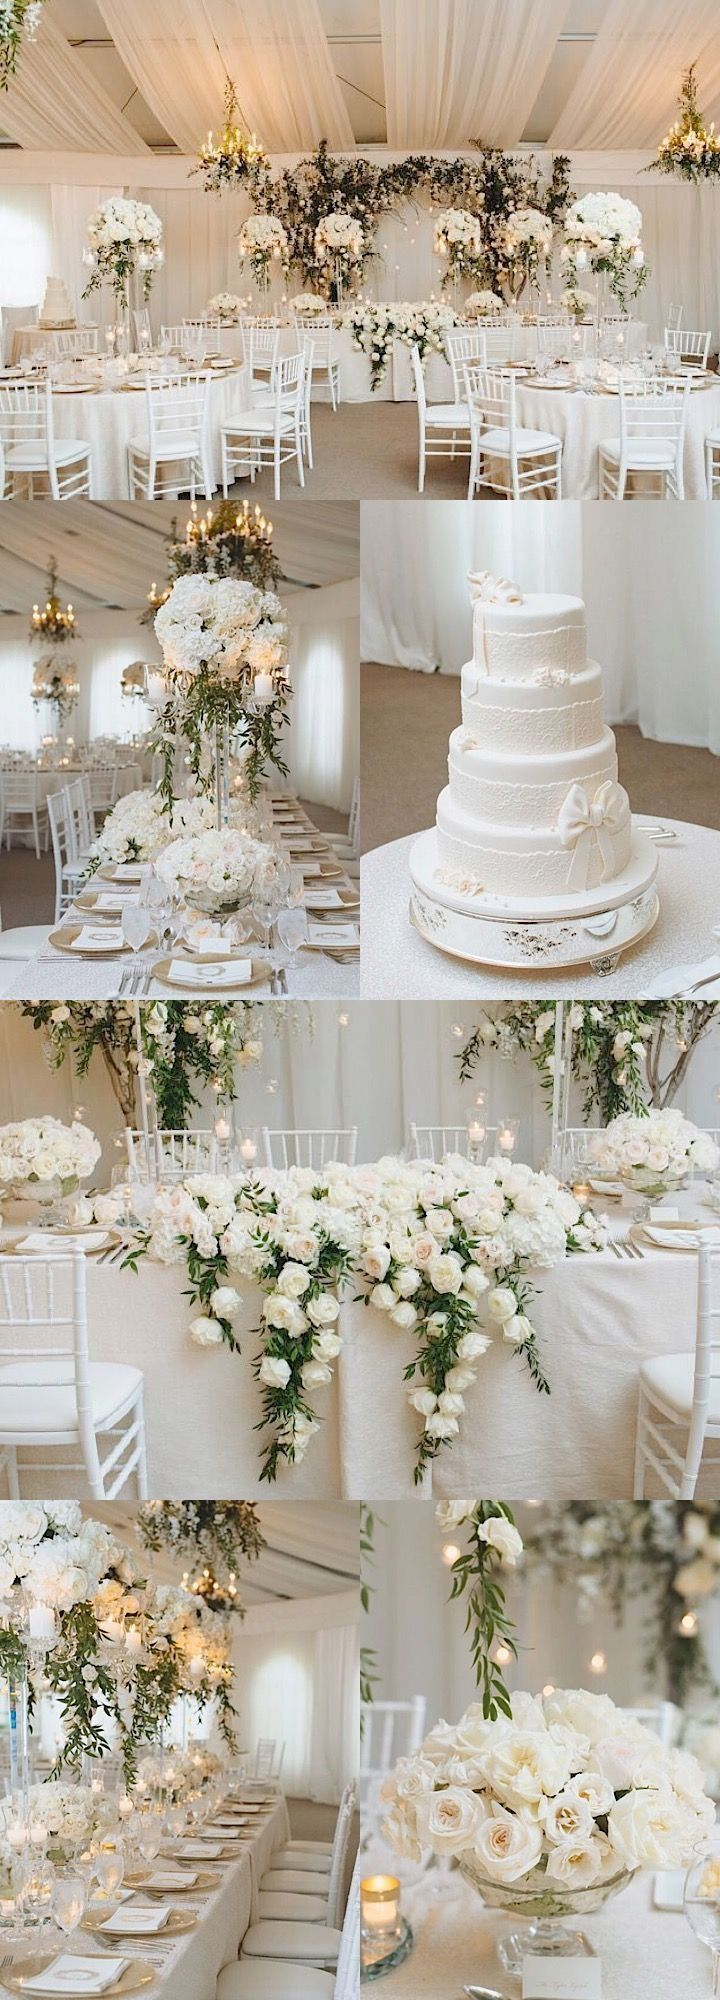 Wedding decorations theme october 2018 Pin by London Howe on October    Pinterest  Head tables